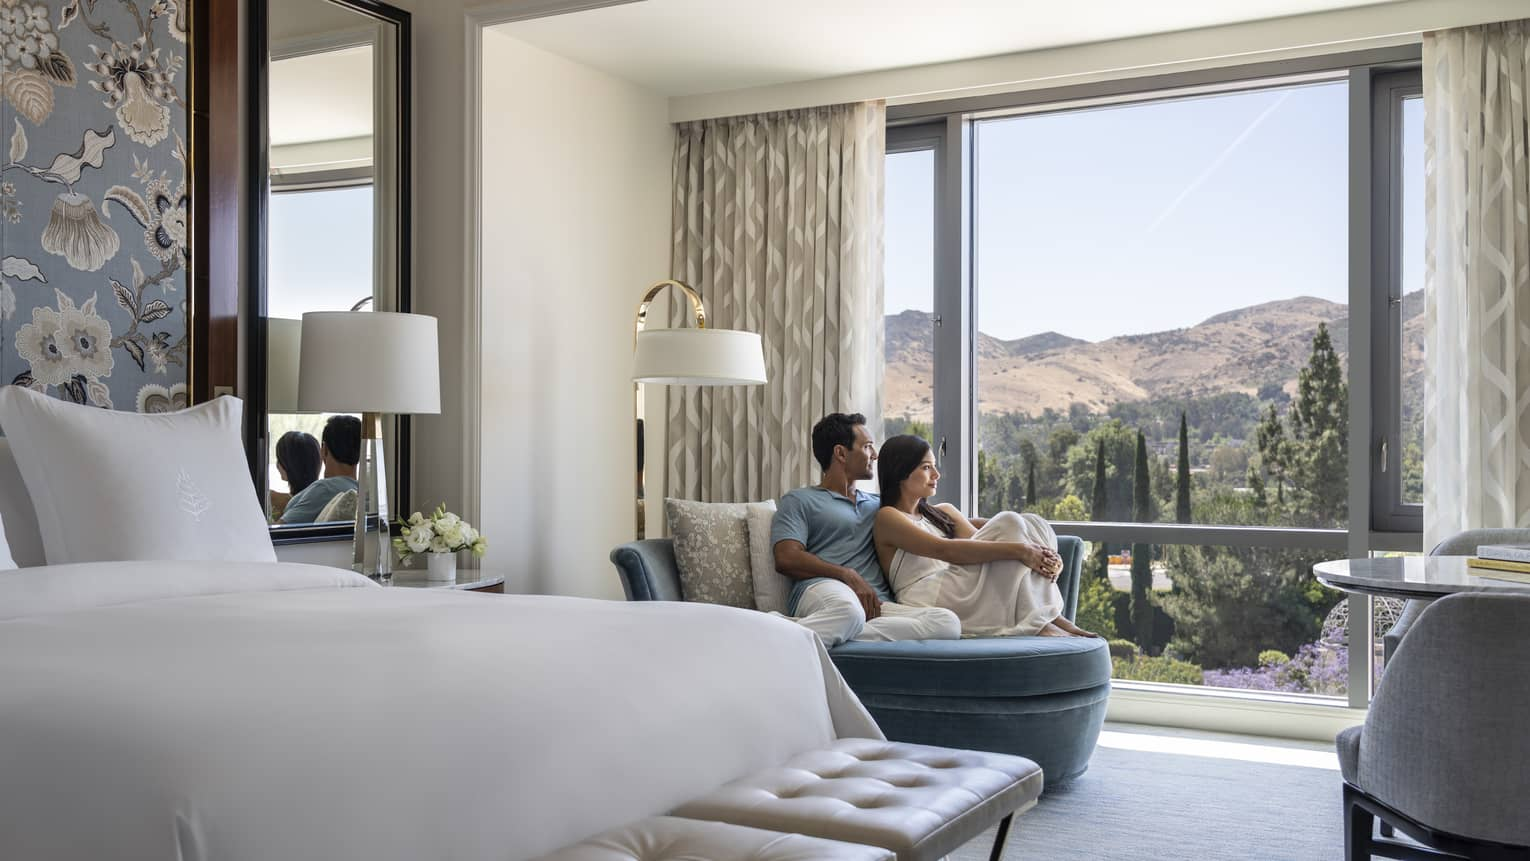 A couple lounging on a chair in their hotel room looking out at the mountains.